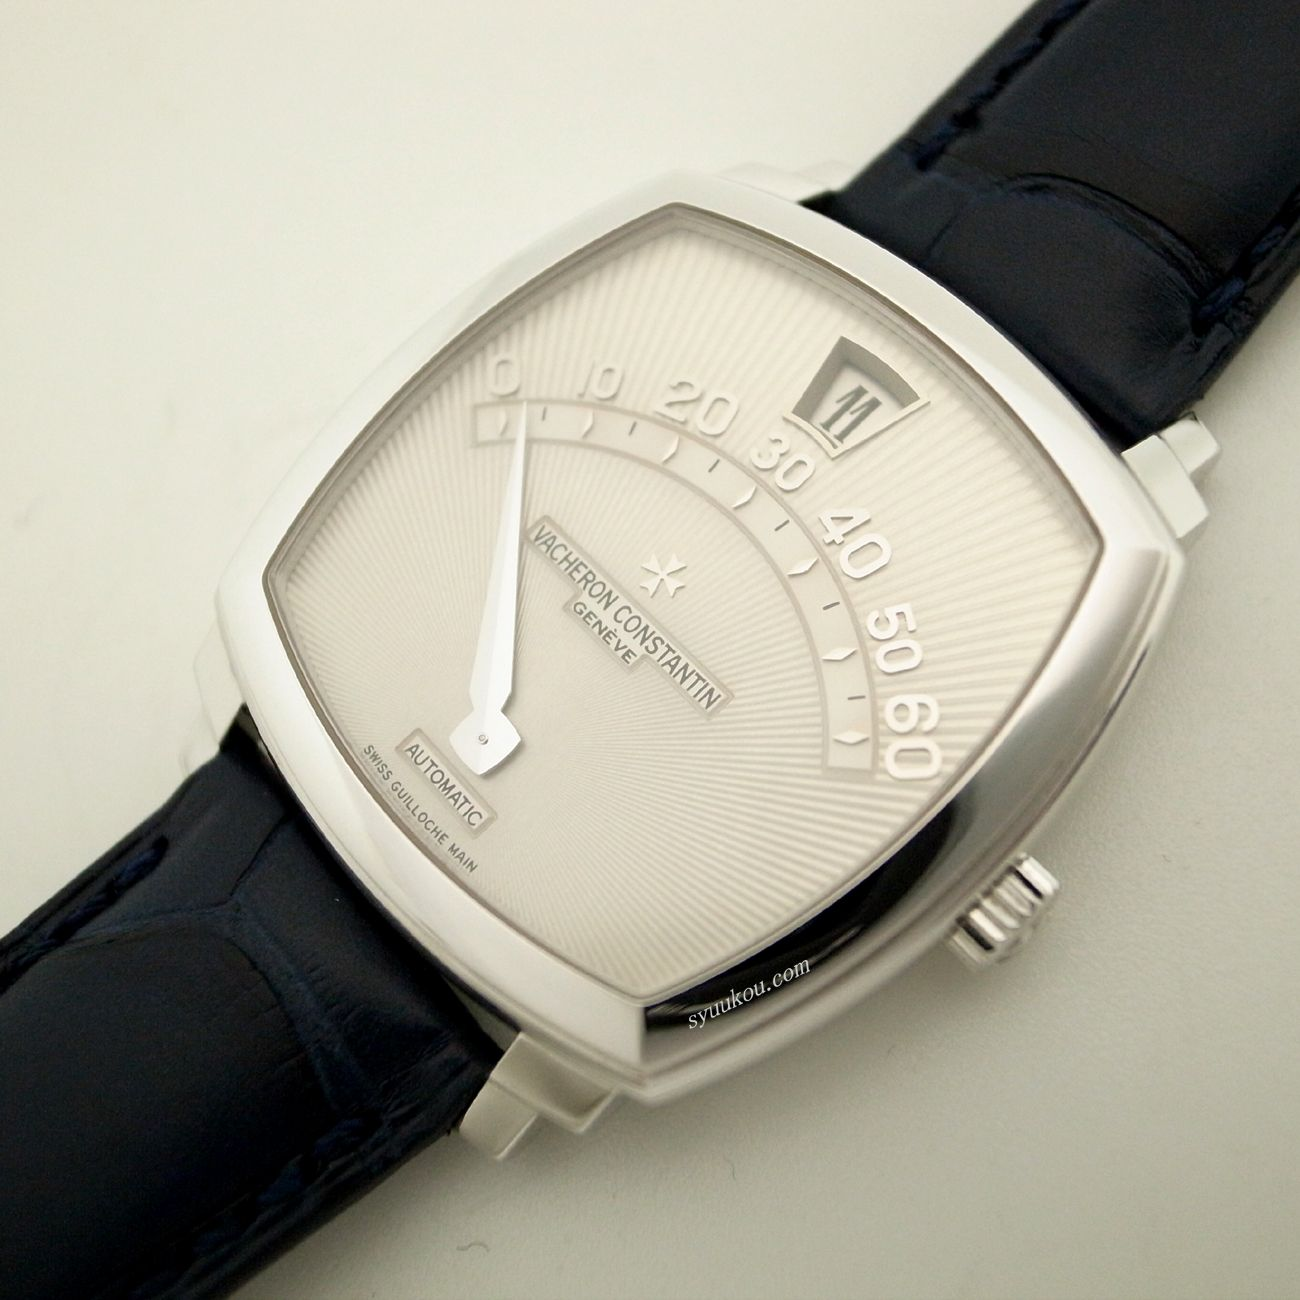 Vacheron Constantin Jumping Hour 1999y Limited 200pics 18kwg Cal 1120 2 Watches For Men Beautiful Watches Mens Jewelry